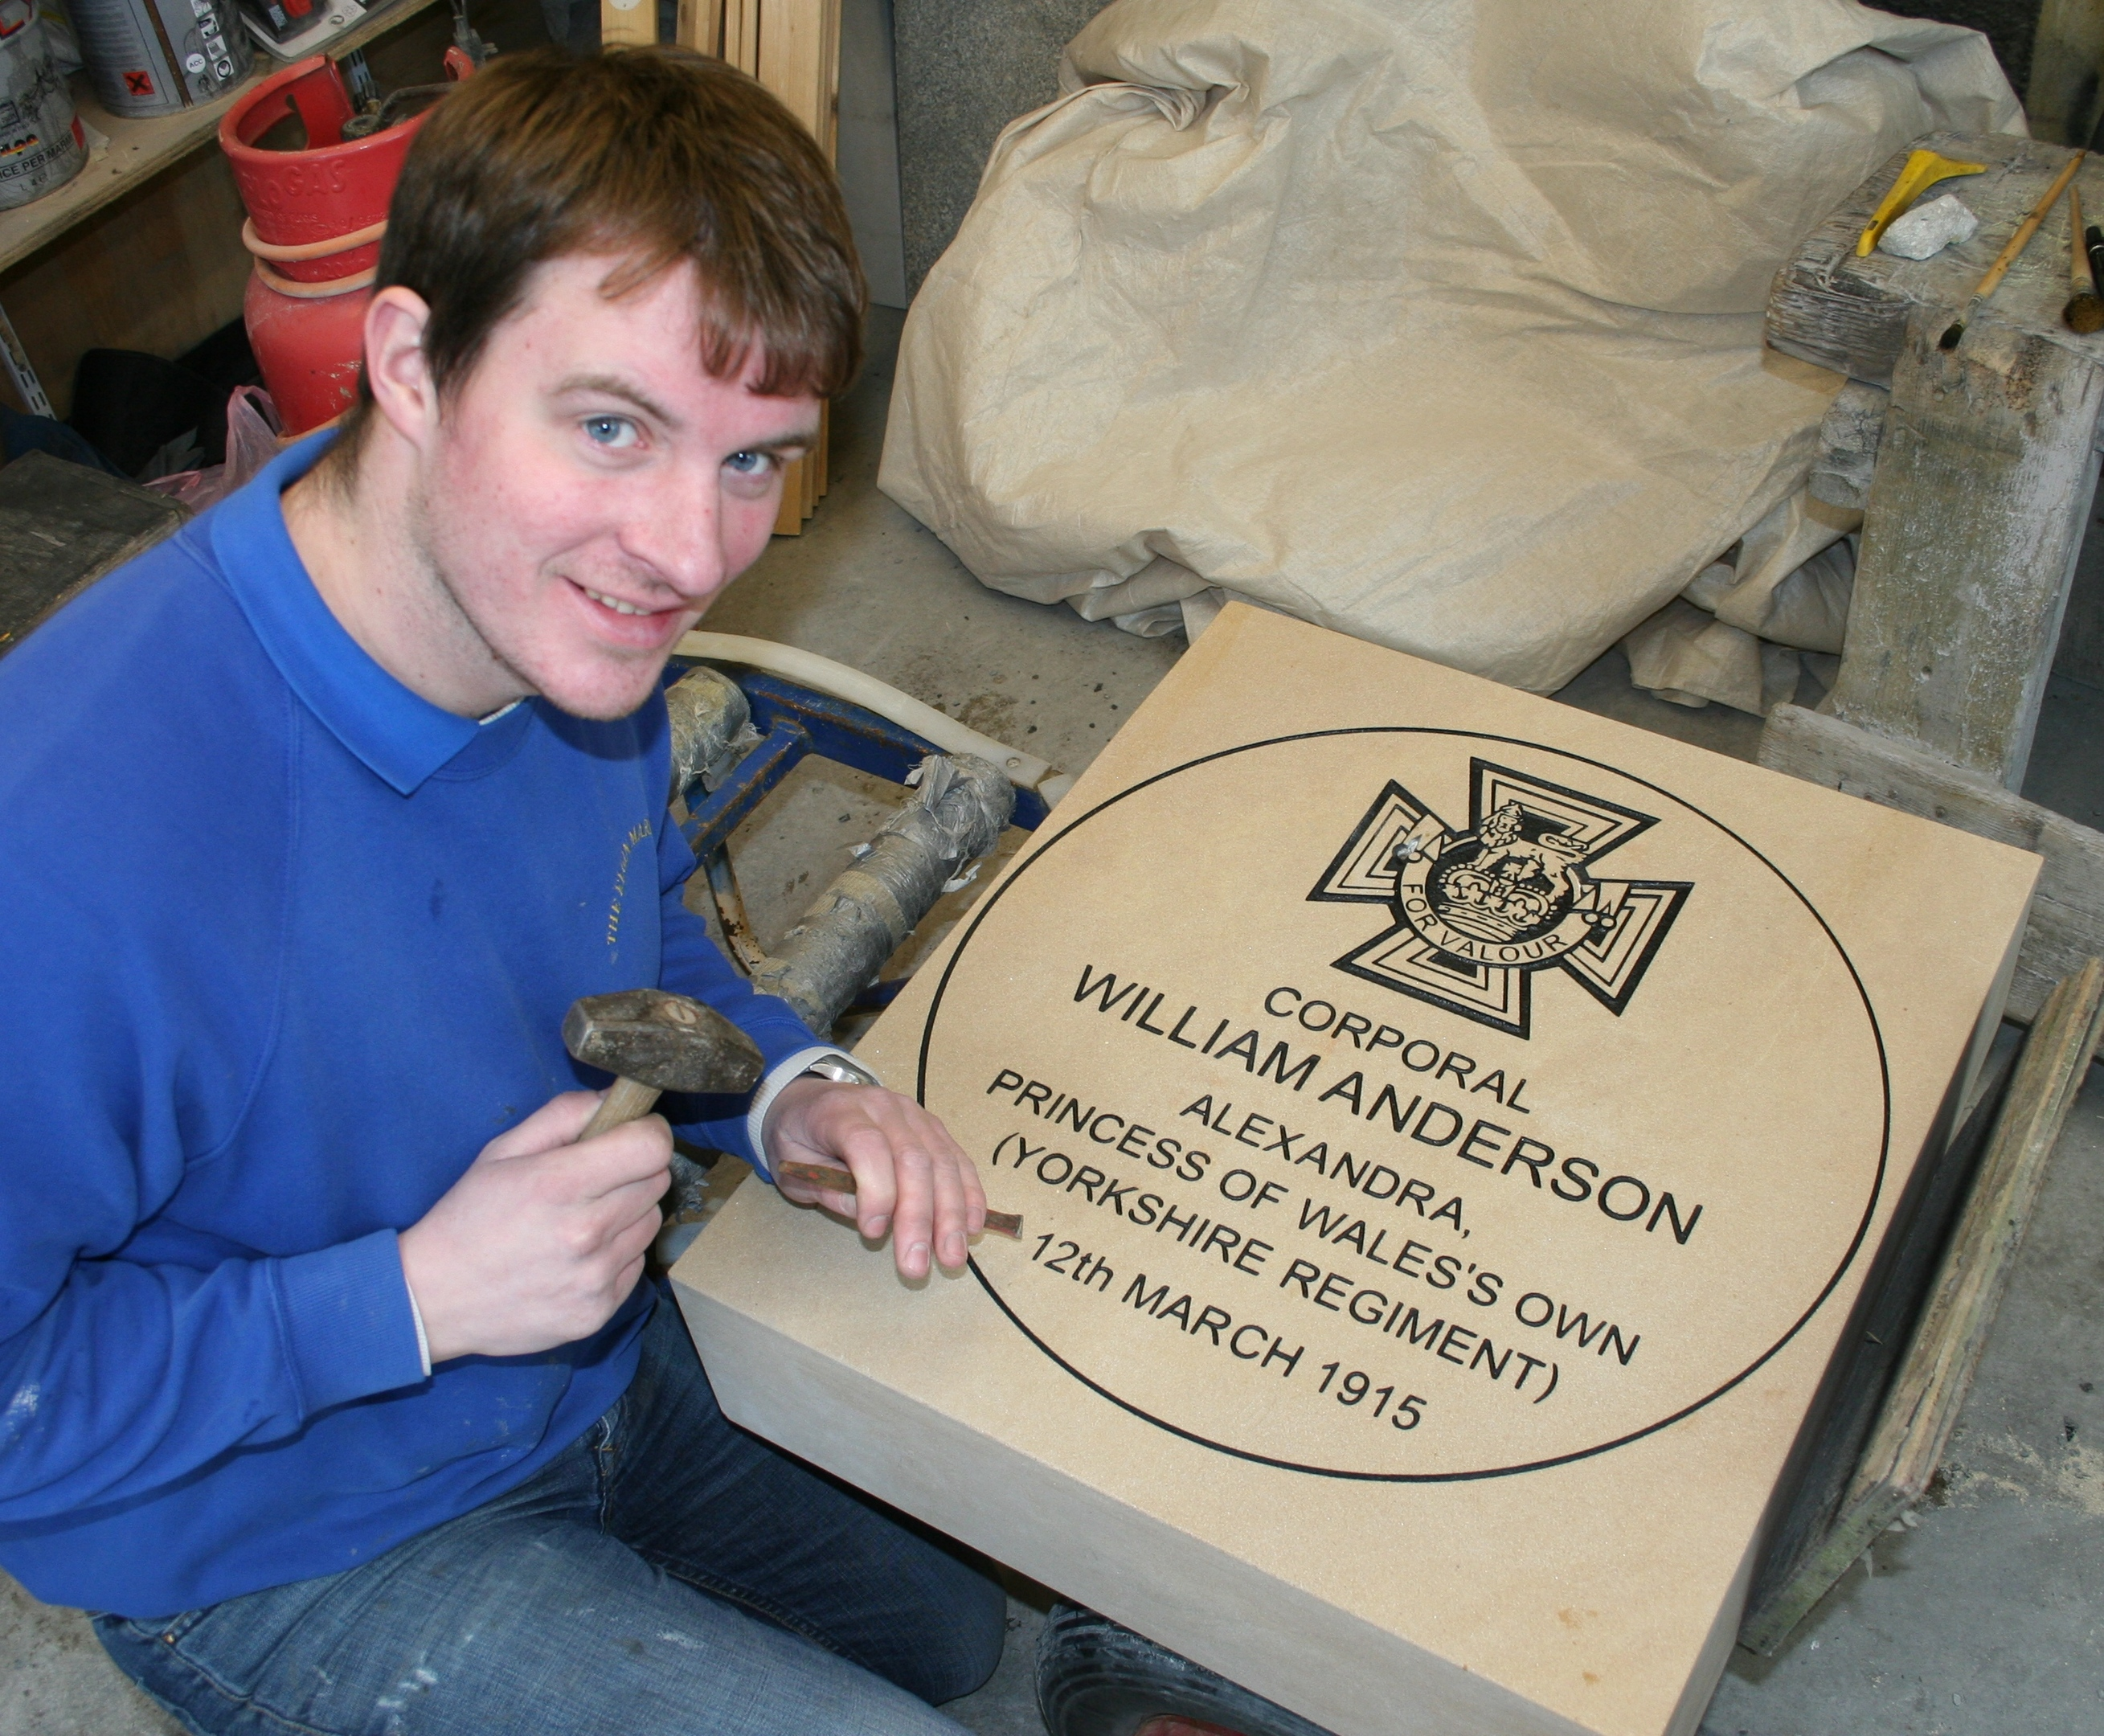 The stone being inscribed by John Ross, a fourth-generation employee of the family firm J.R. Henderson and Sons of Elgin.